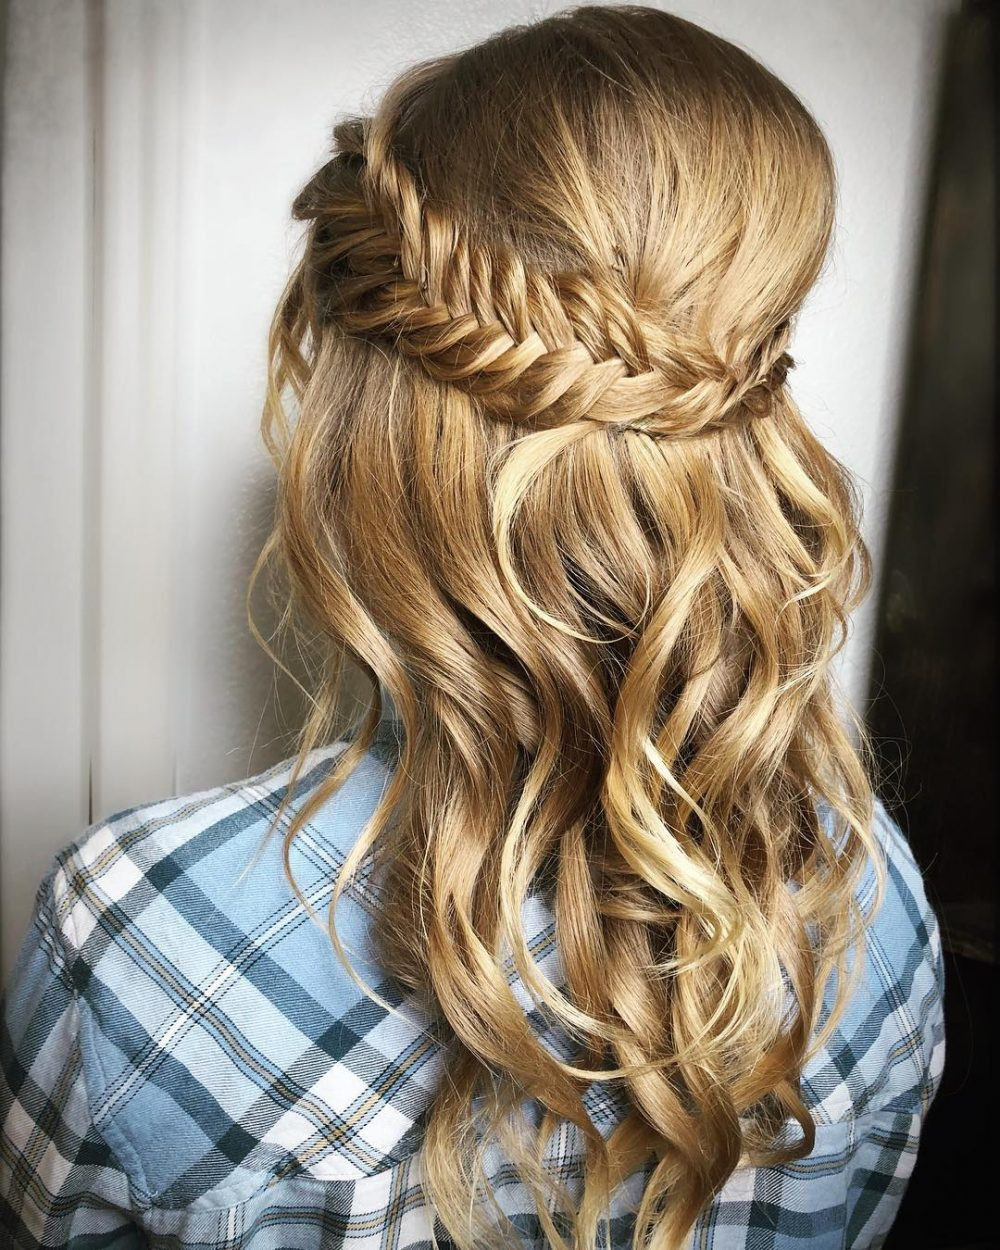 Best ideas about Prom Half Up Half Down Hairstyles . Save or Pin Half Up Half Down Prom Hairstyles and How To s Now.